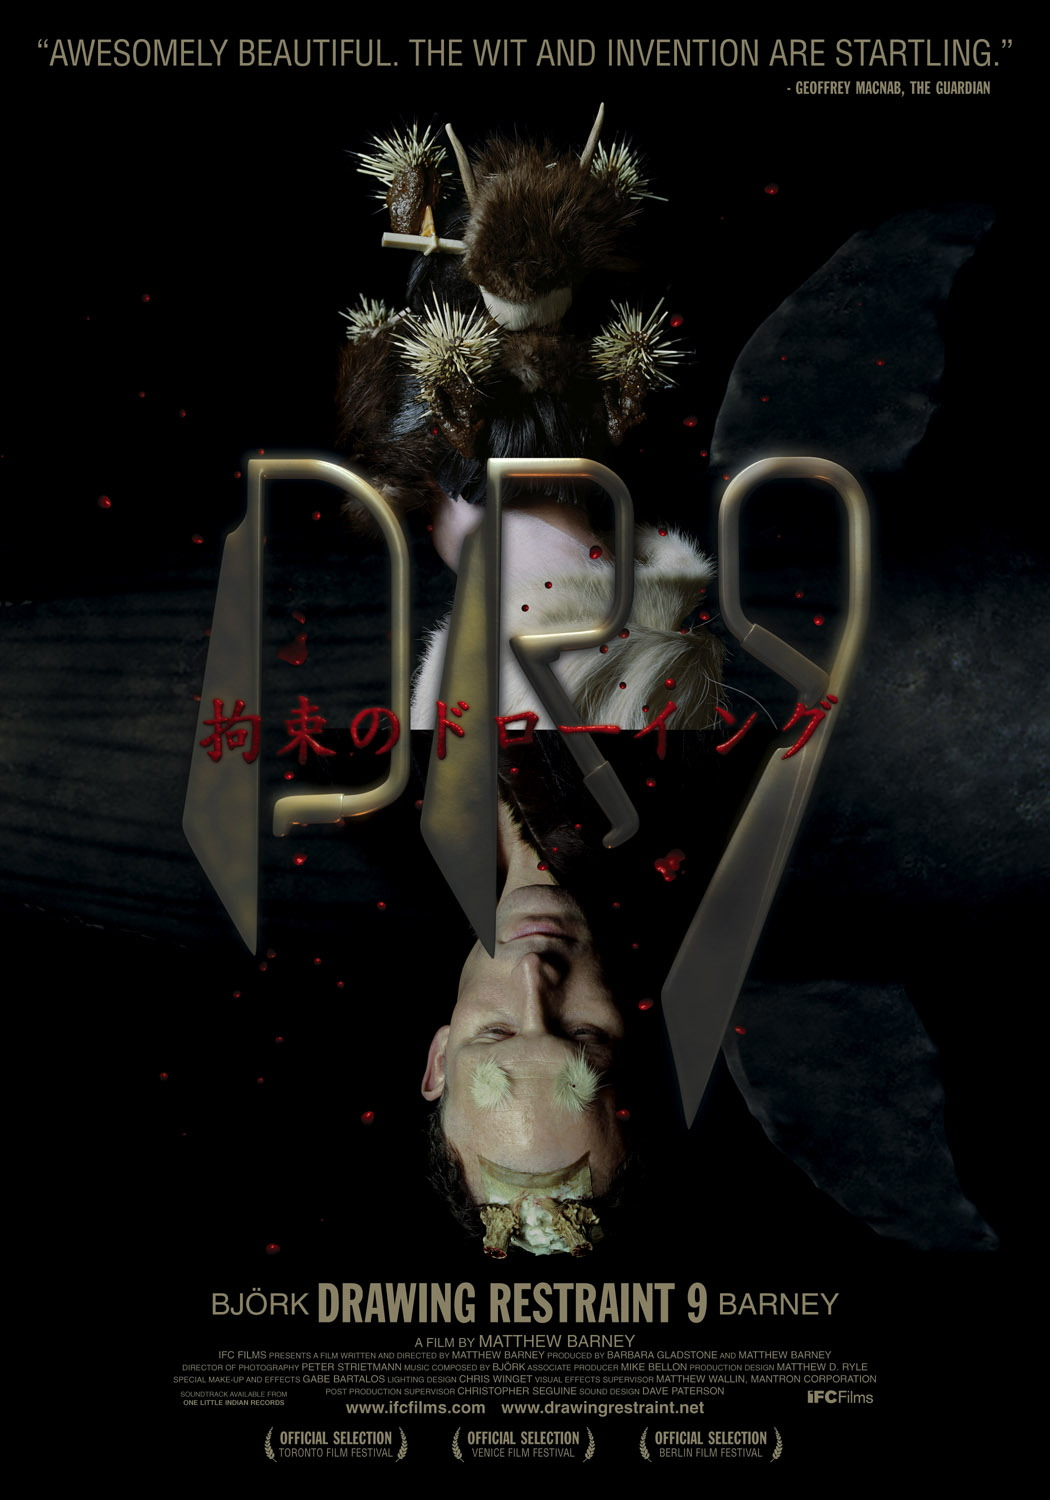 Theatrical poster for Drawing Restraint 9 staring Bjork. I worked as Visual Effects Supervisor on the project.